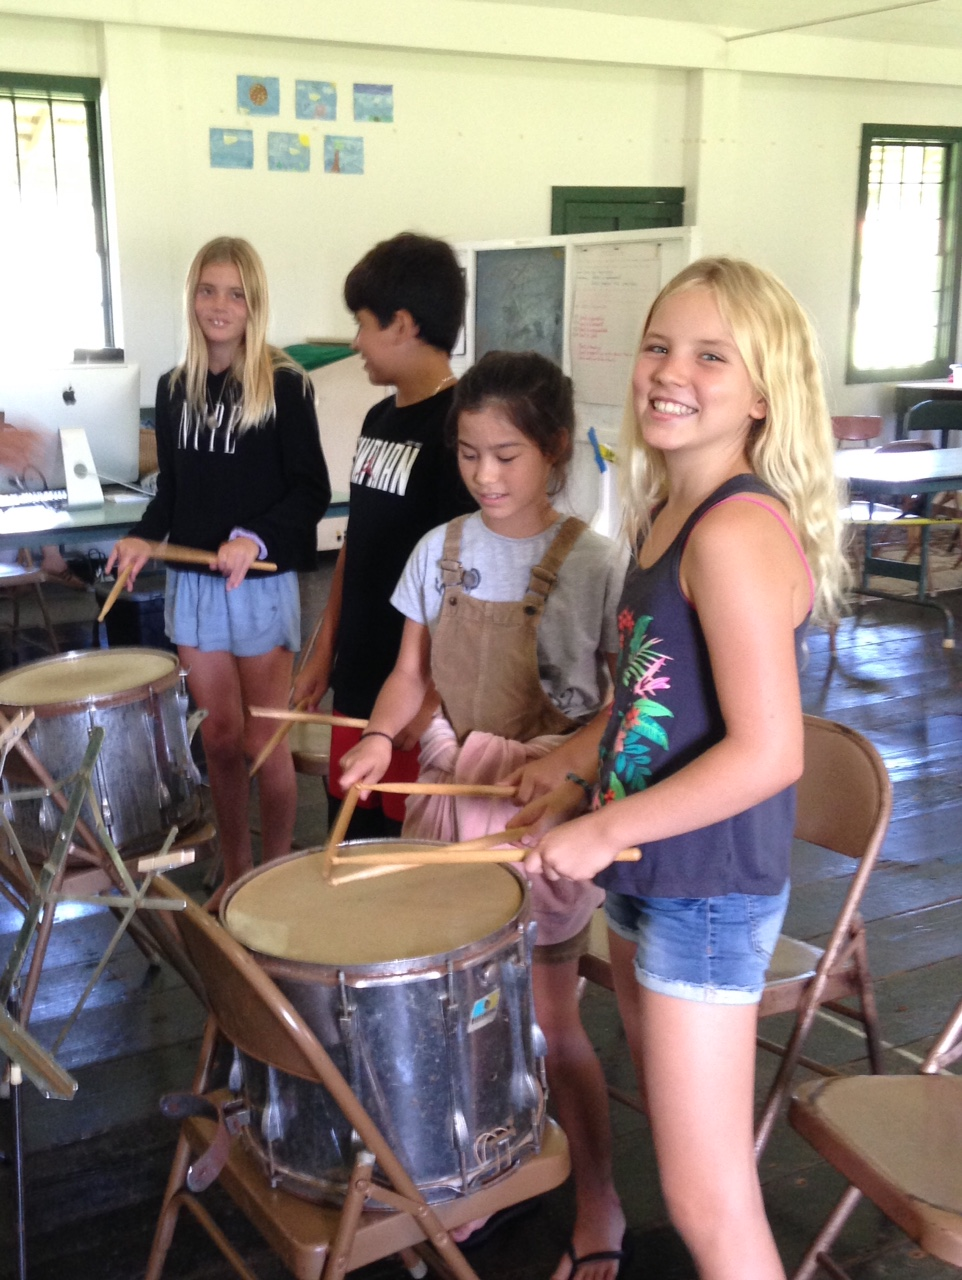 Music - Music at Hanalei School is a dynamic interactive music experience with an emphasis on singing, chanting, rhythm and movement. Songs from around the world are used to facilitate weekly explorations into various cultural songs, giving the Kindergarten through 4th grade an opportunity to notice similarities and differences to their own cultures and traditions.  Students are invited to explore their own creativity through movement, rhythm, chant, and song.  Hawaii State music standards, vocal and breathing techniques, steady beat, rhythm, percussion and ukulele are explored at age appropriate grade levels throughout the year.